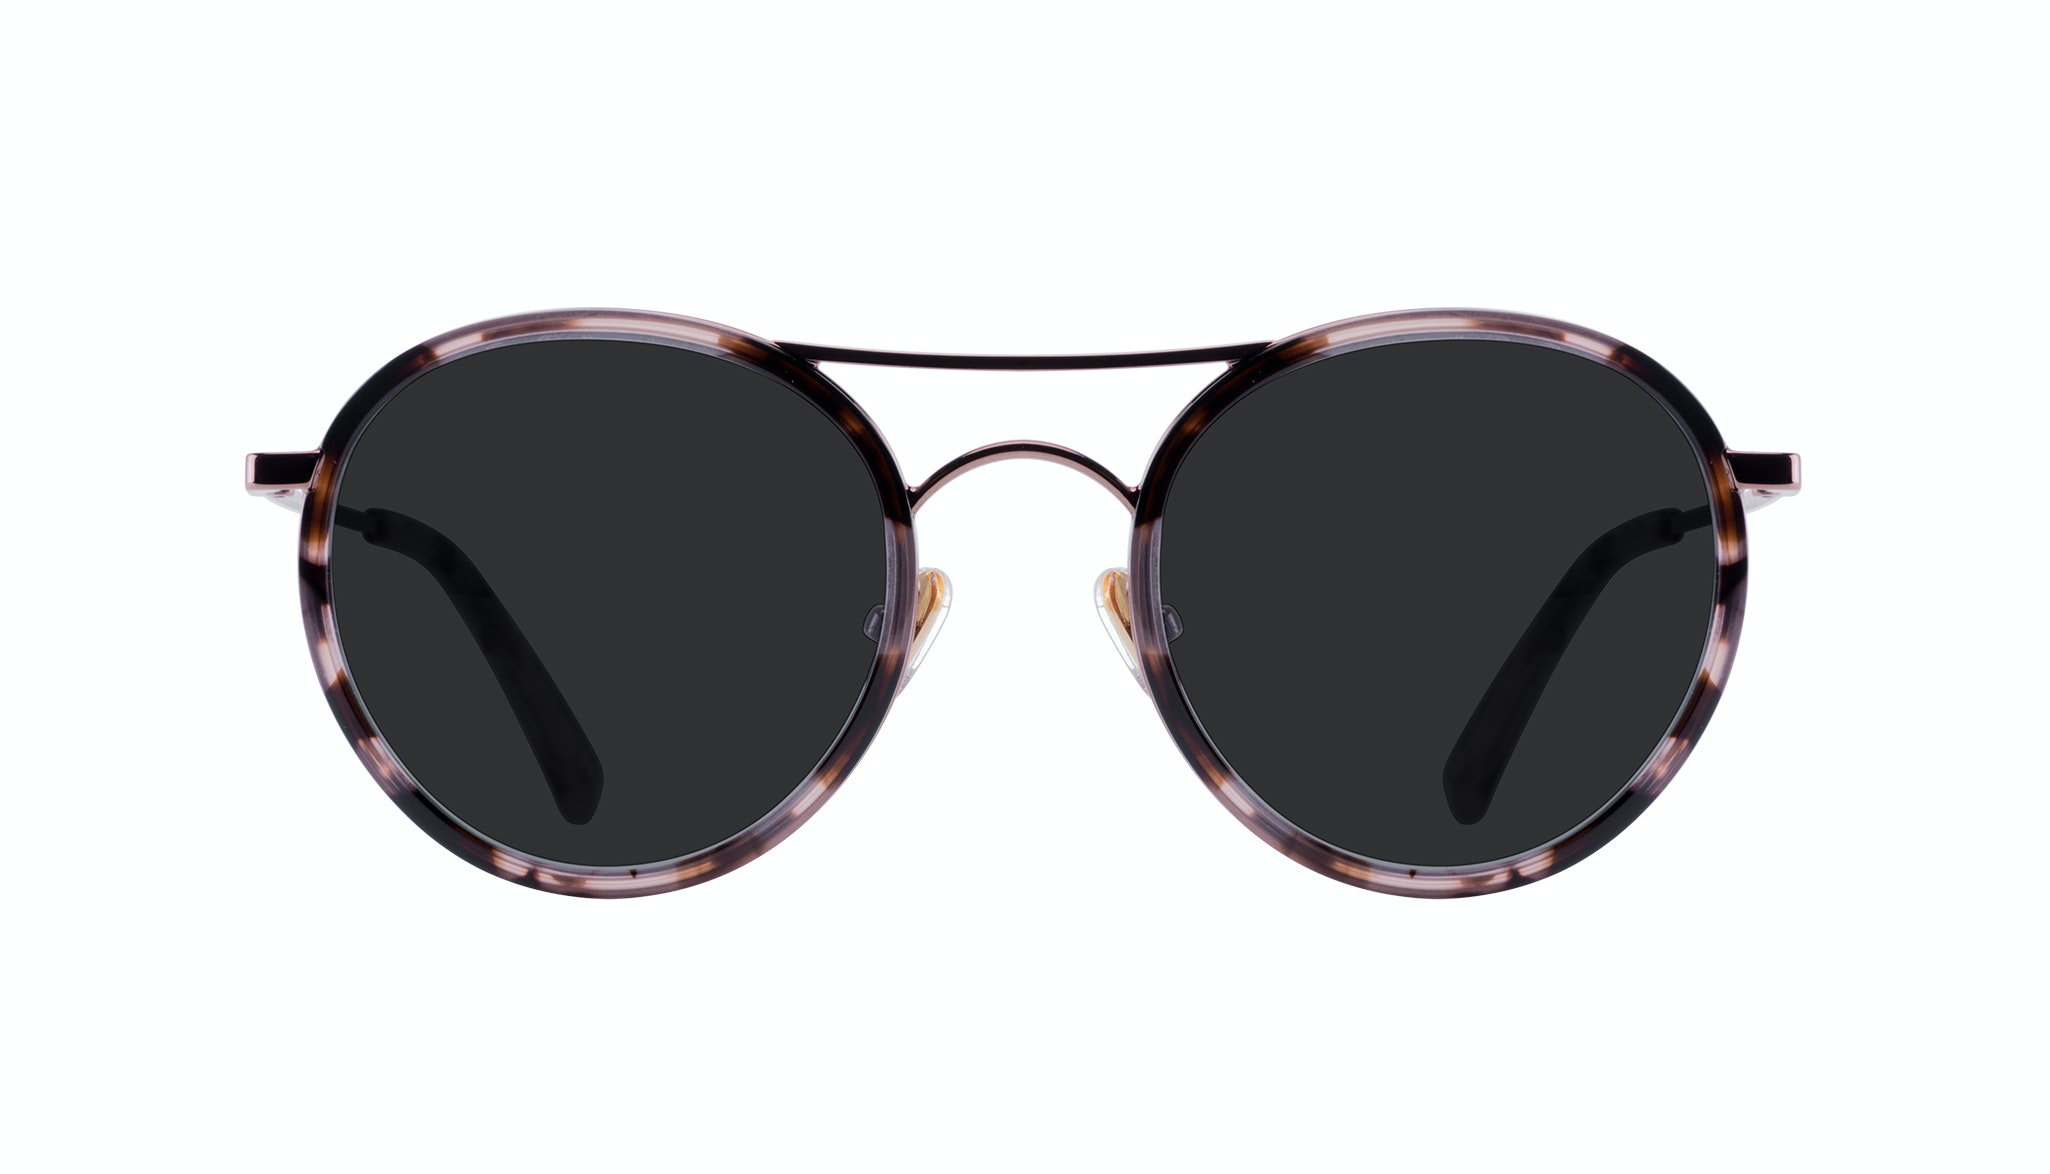 Affordable Fashion Glasses Aviator Round Sunglasses Women Dawn Pink Tortoise